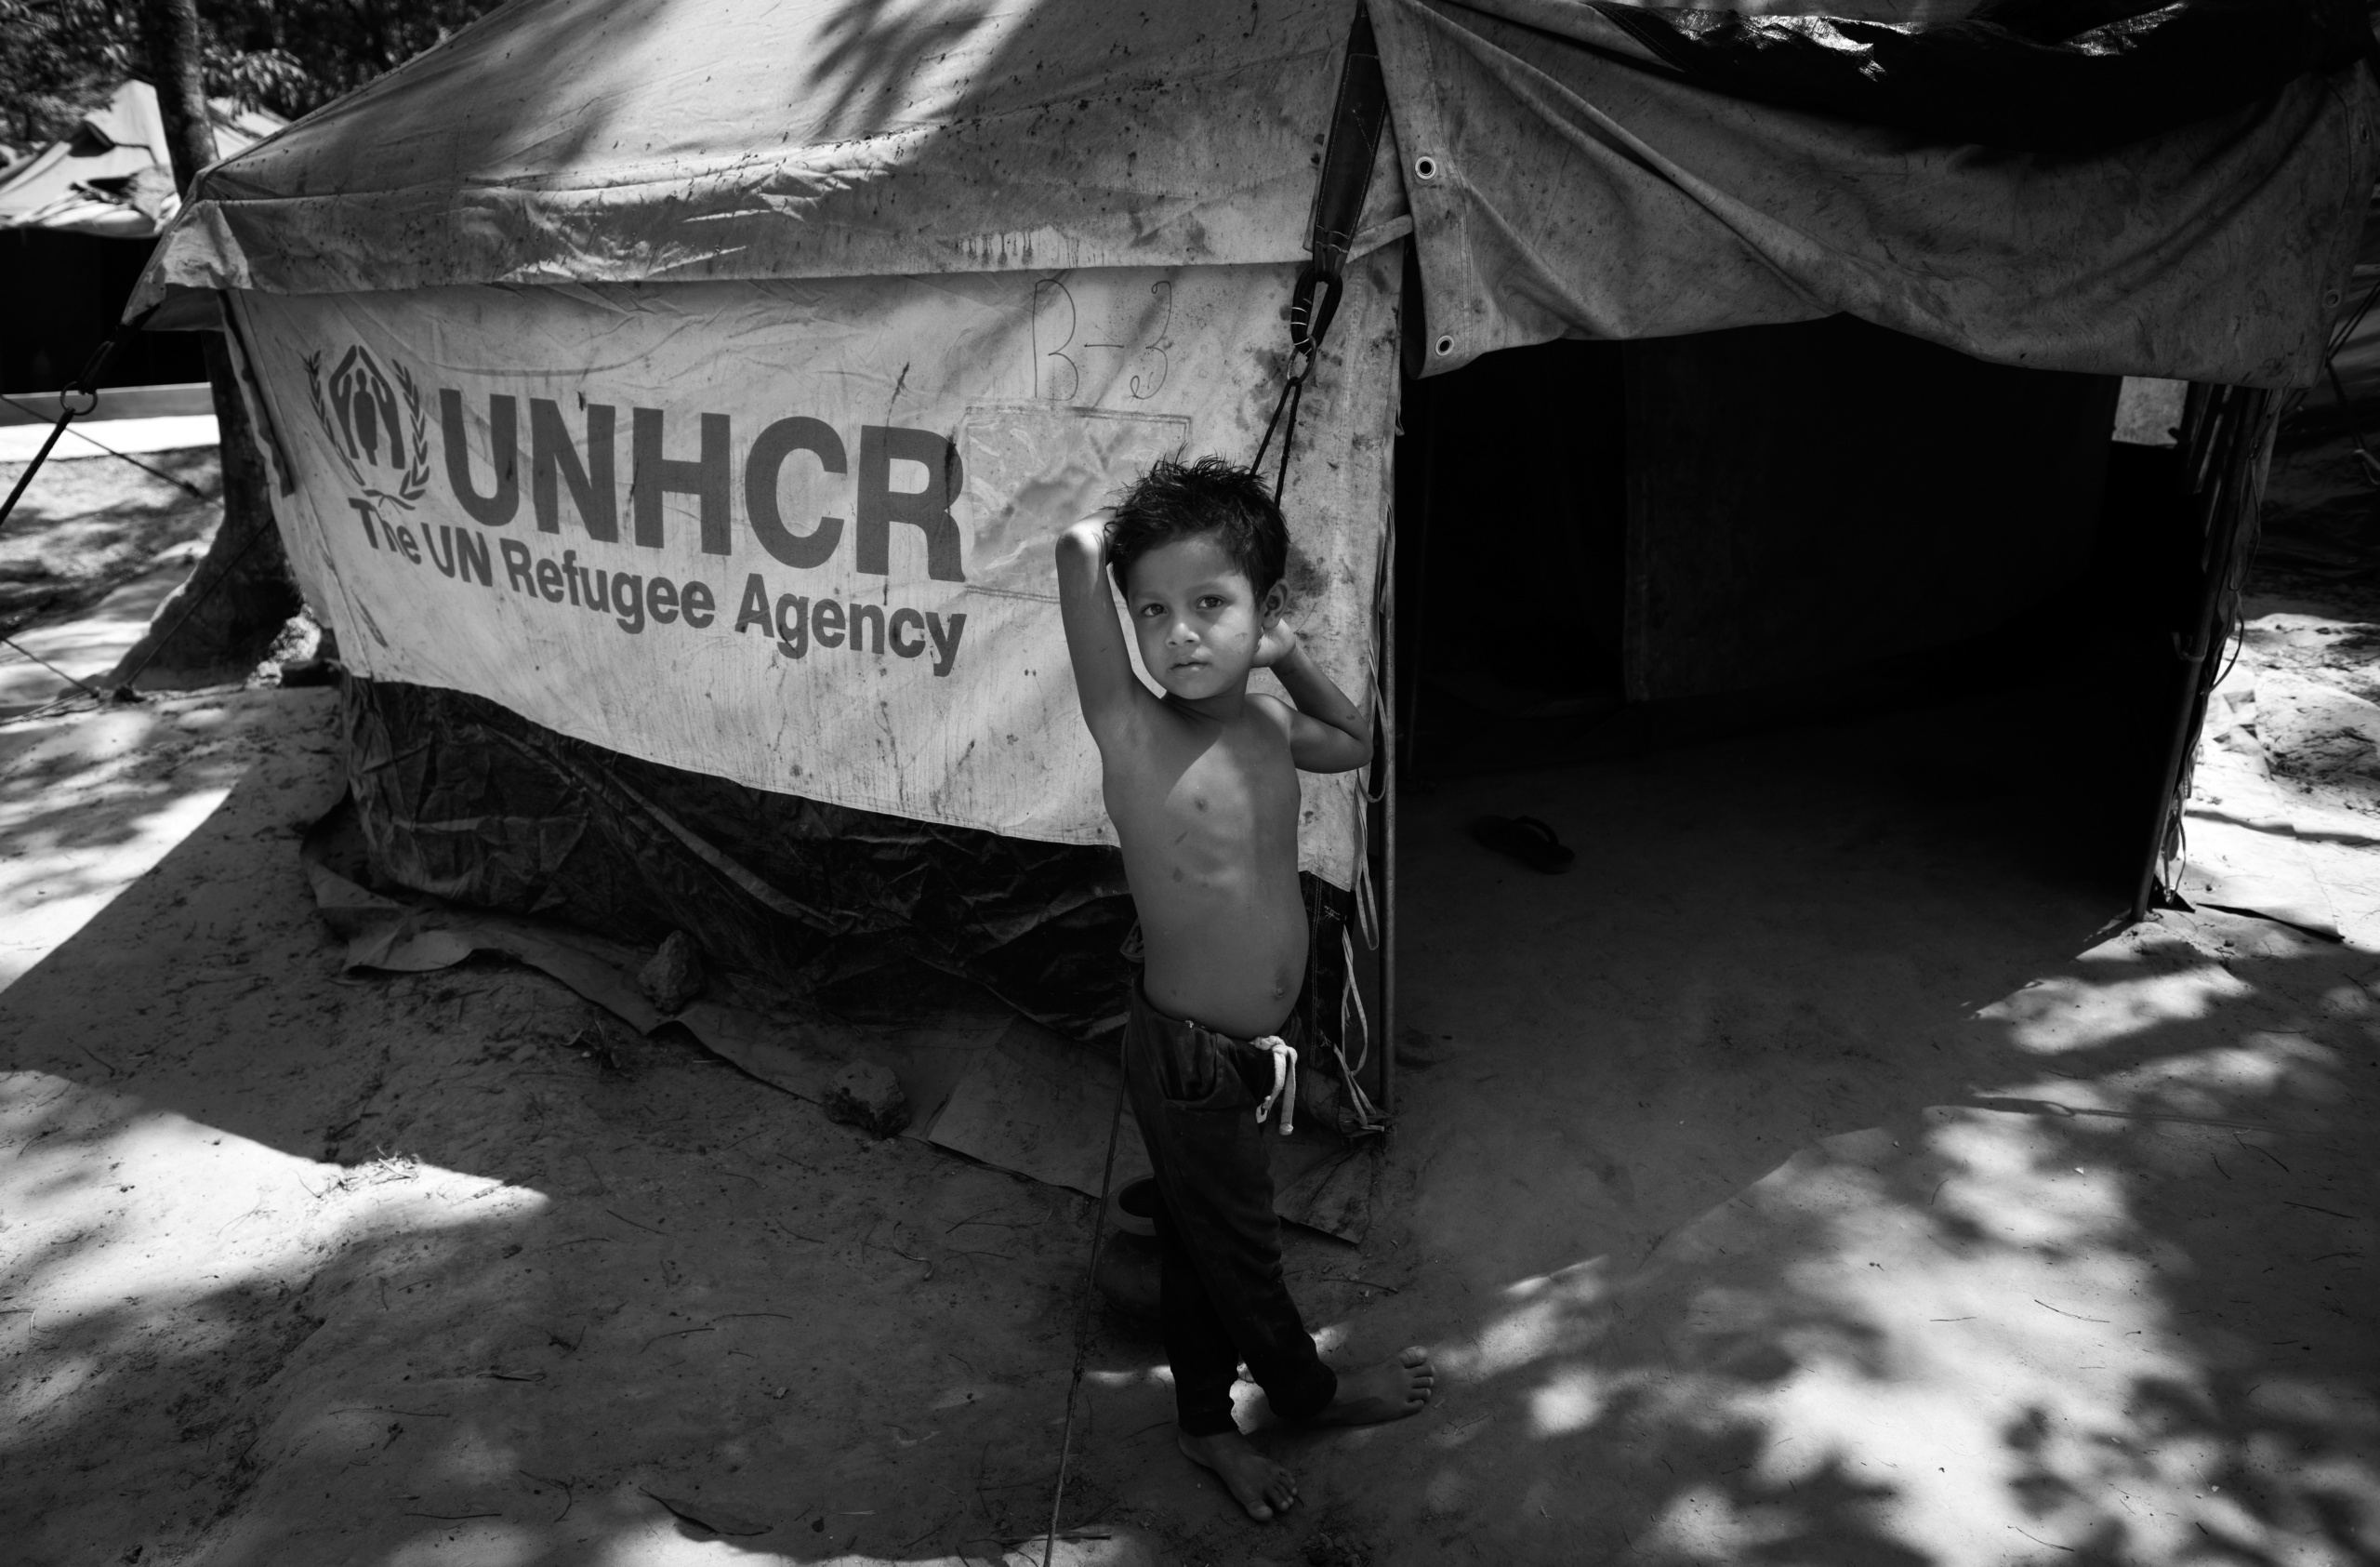 Bangladesh, Cox's Bazaar. Rohingya child poses in front UNHCR tent. Over 650,000 Rohingya have crossed the border to Bangladesh since August last year, fleeing the violence.